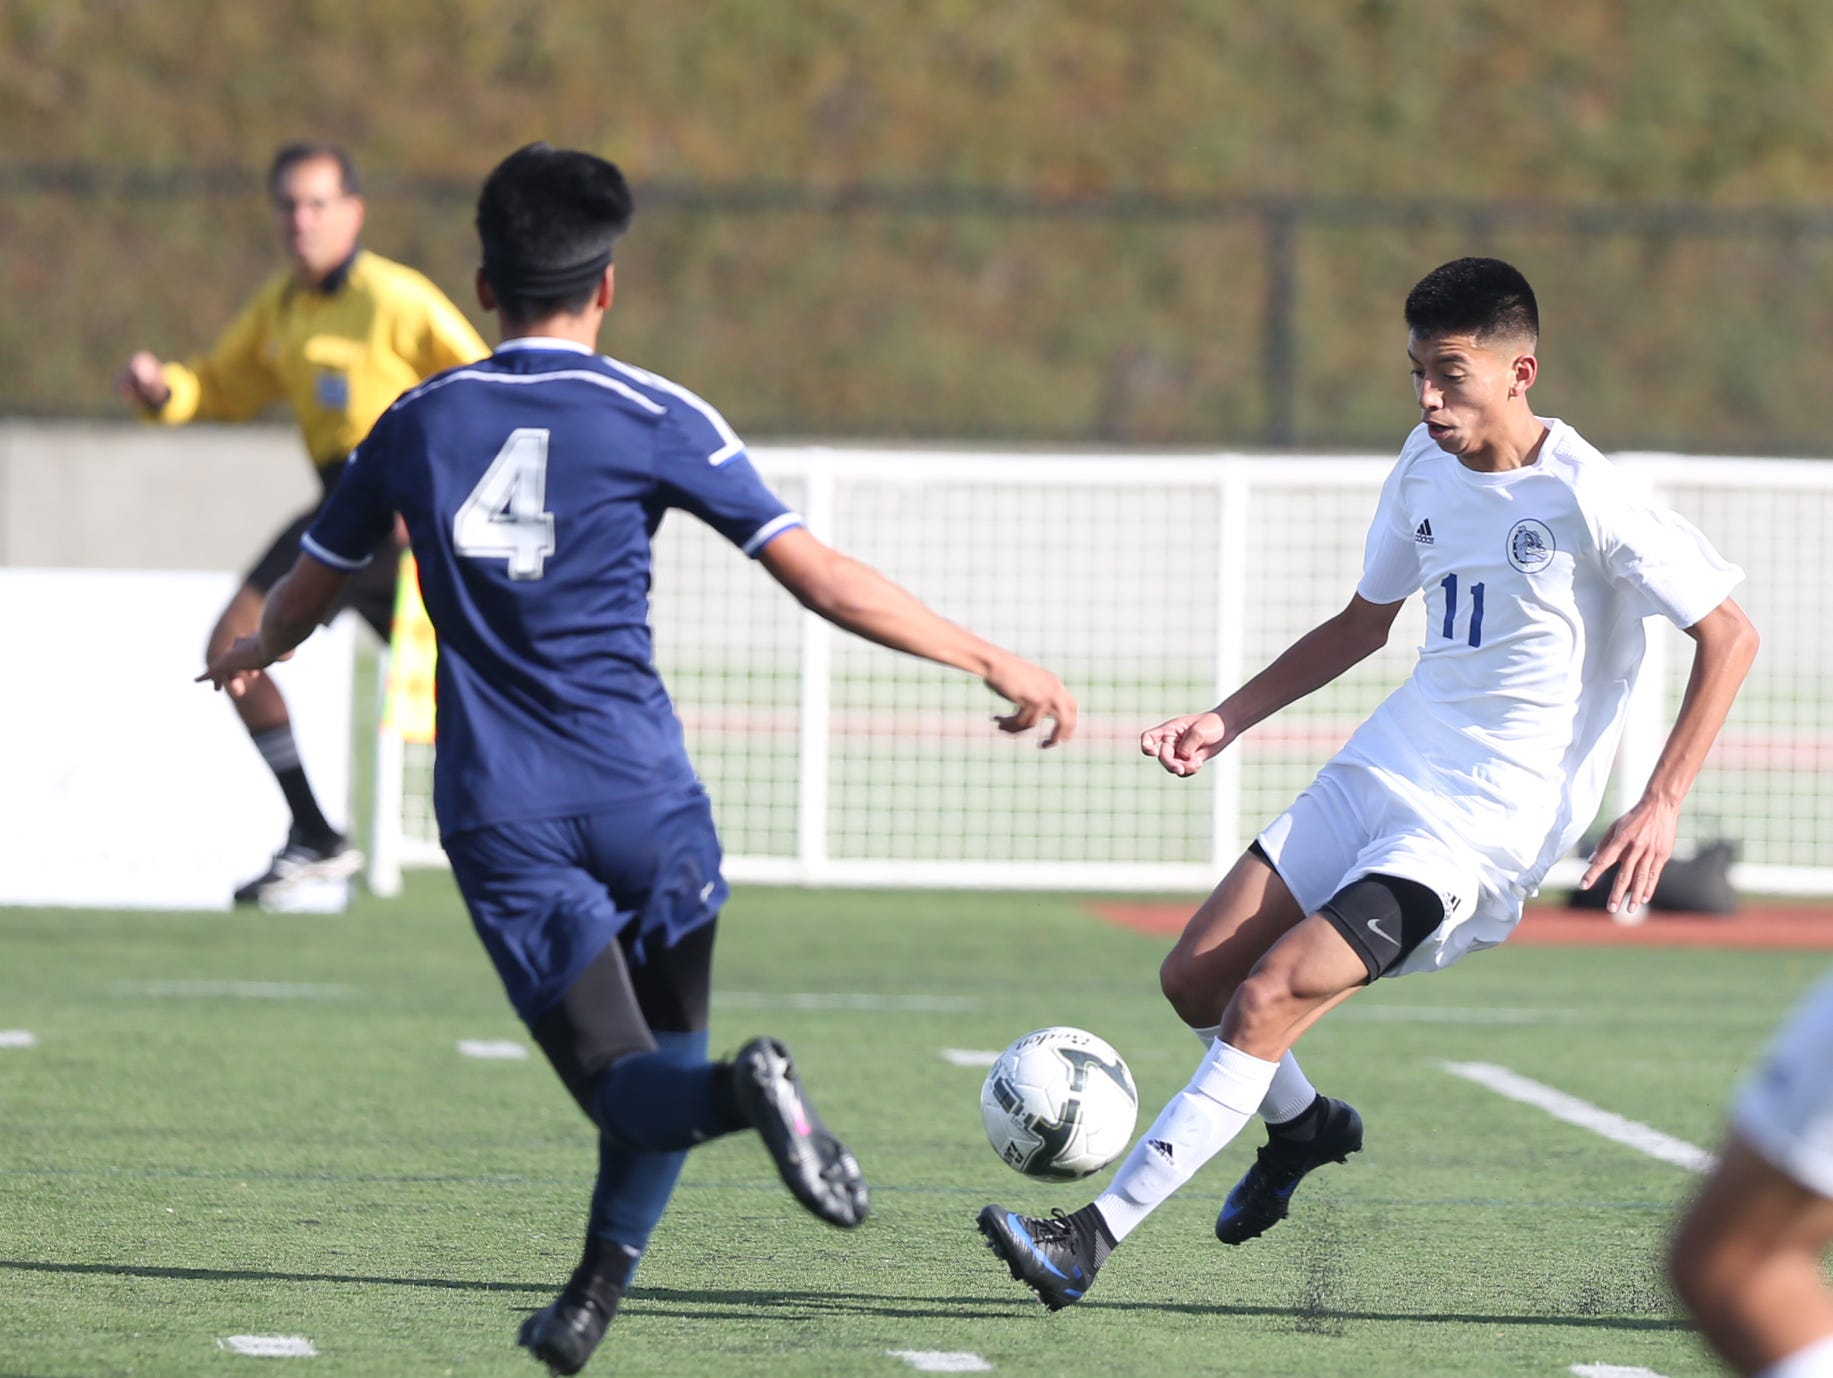 Woodburn's Reggie Reyes was named the Mid-Willamette Conference boys soccer player of the year.